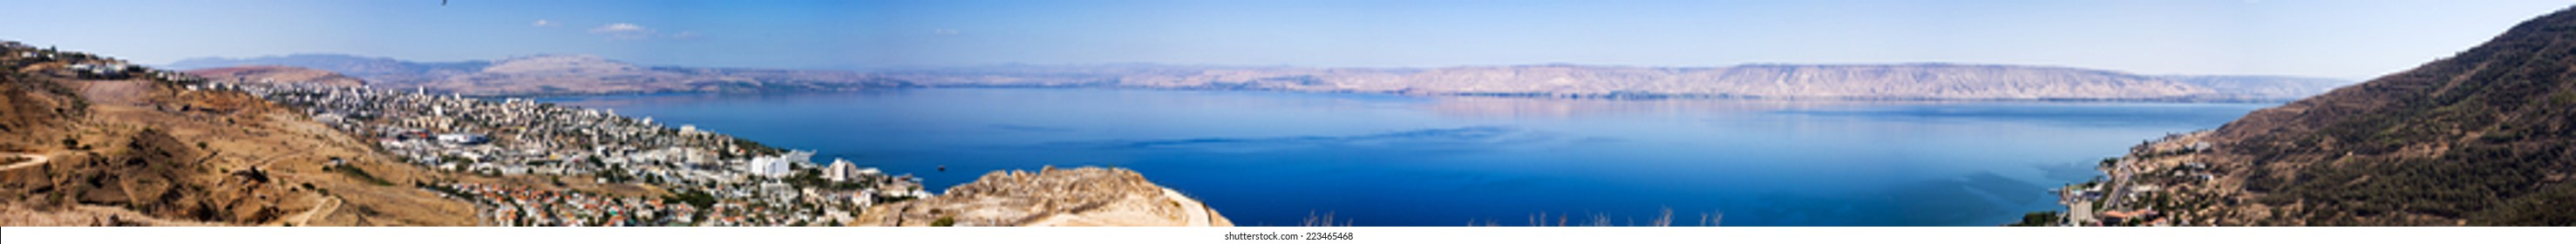 Tiberias , Israel - October 4 . 2014: Panoramic photo of Tiberias on the shores of the sea of Galilee ( Lake Kinneret) . Israel.